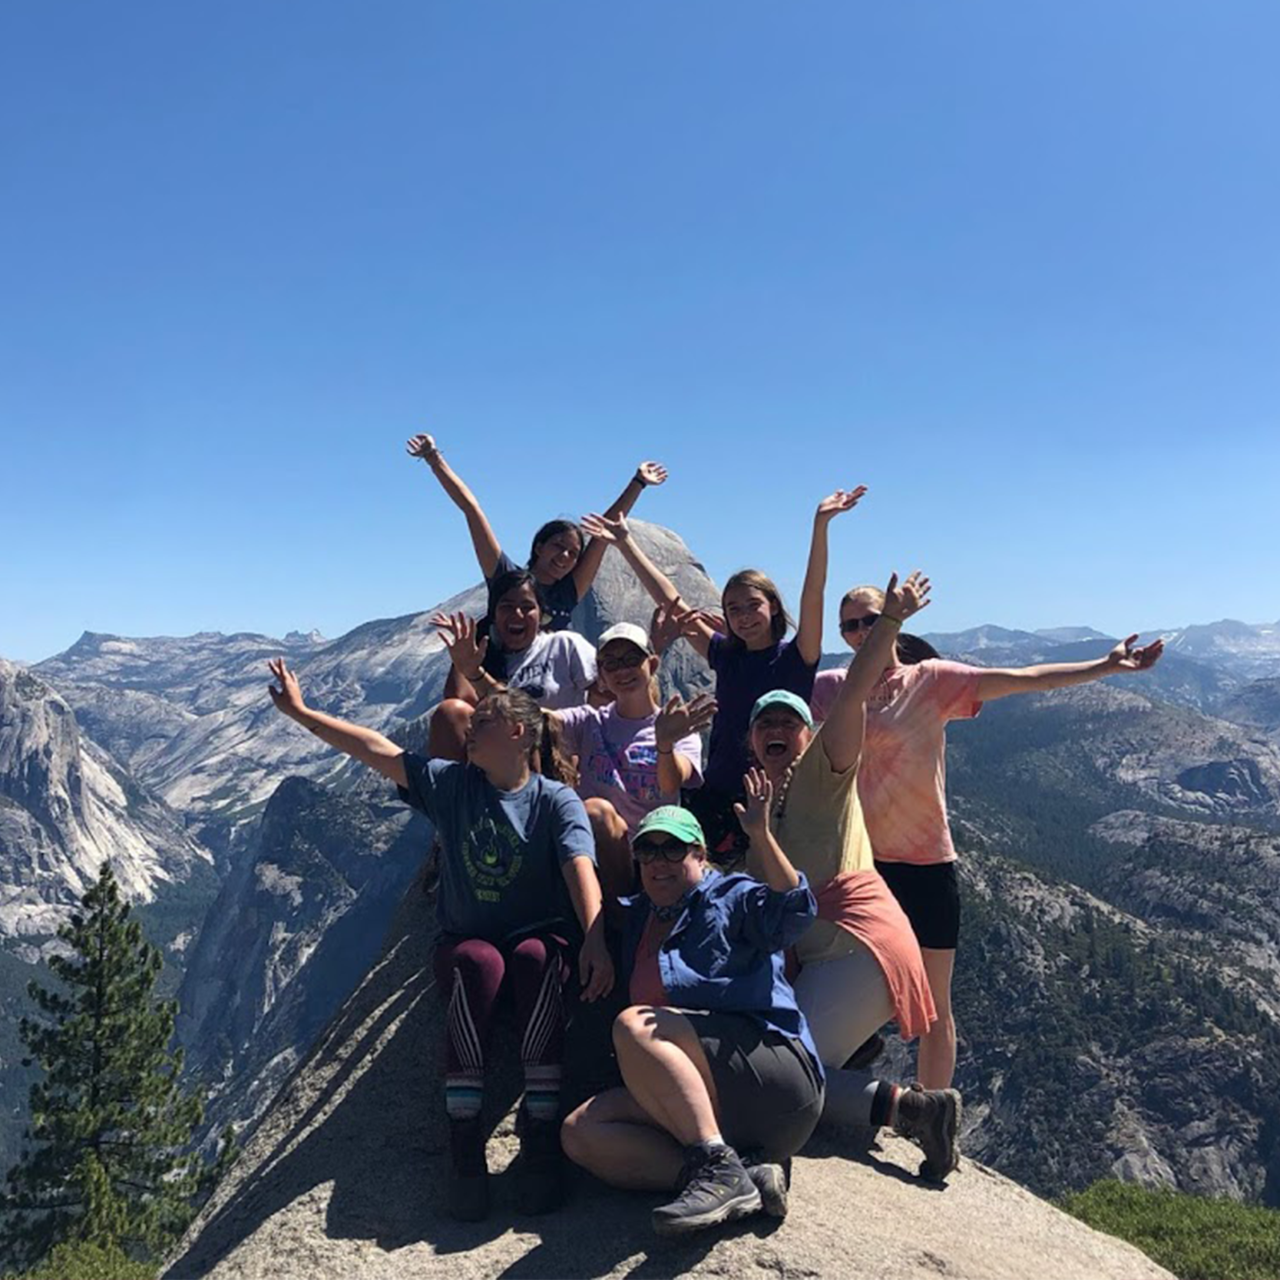 Group of girls standing on top of mountain, posing with hands raised